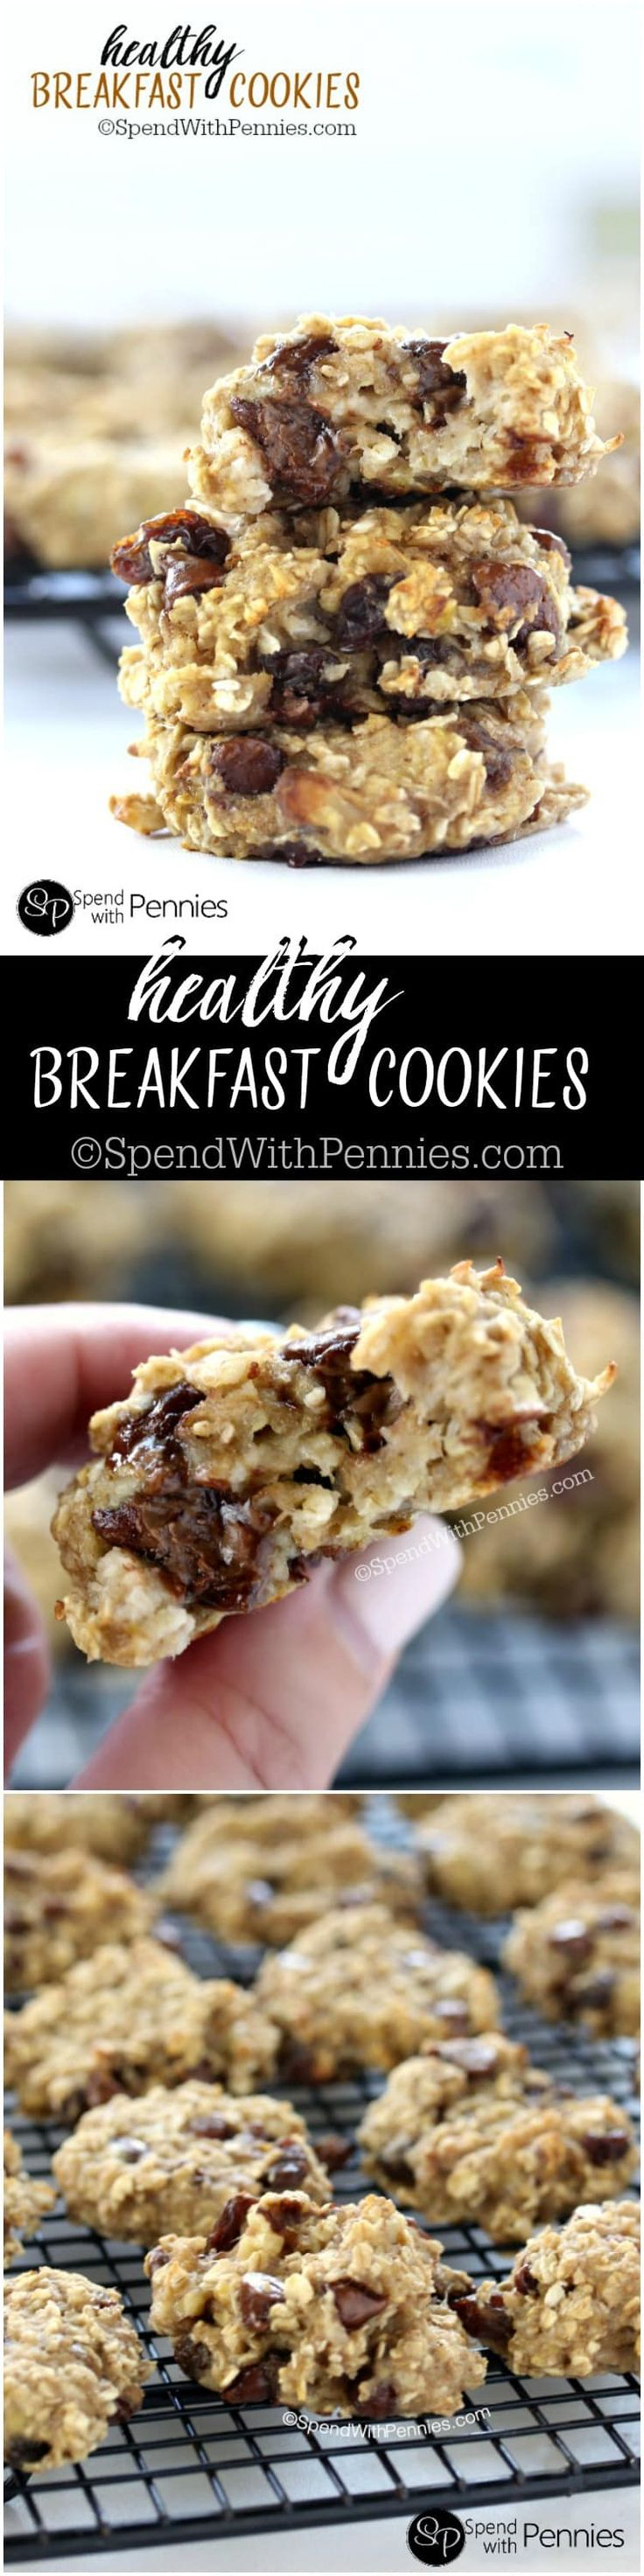 These breakfast cookies are deliciously moist & soft! No added sugar, dairy or fats but tons of flavor!